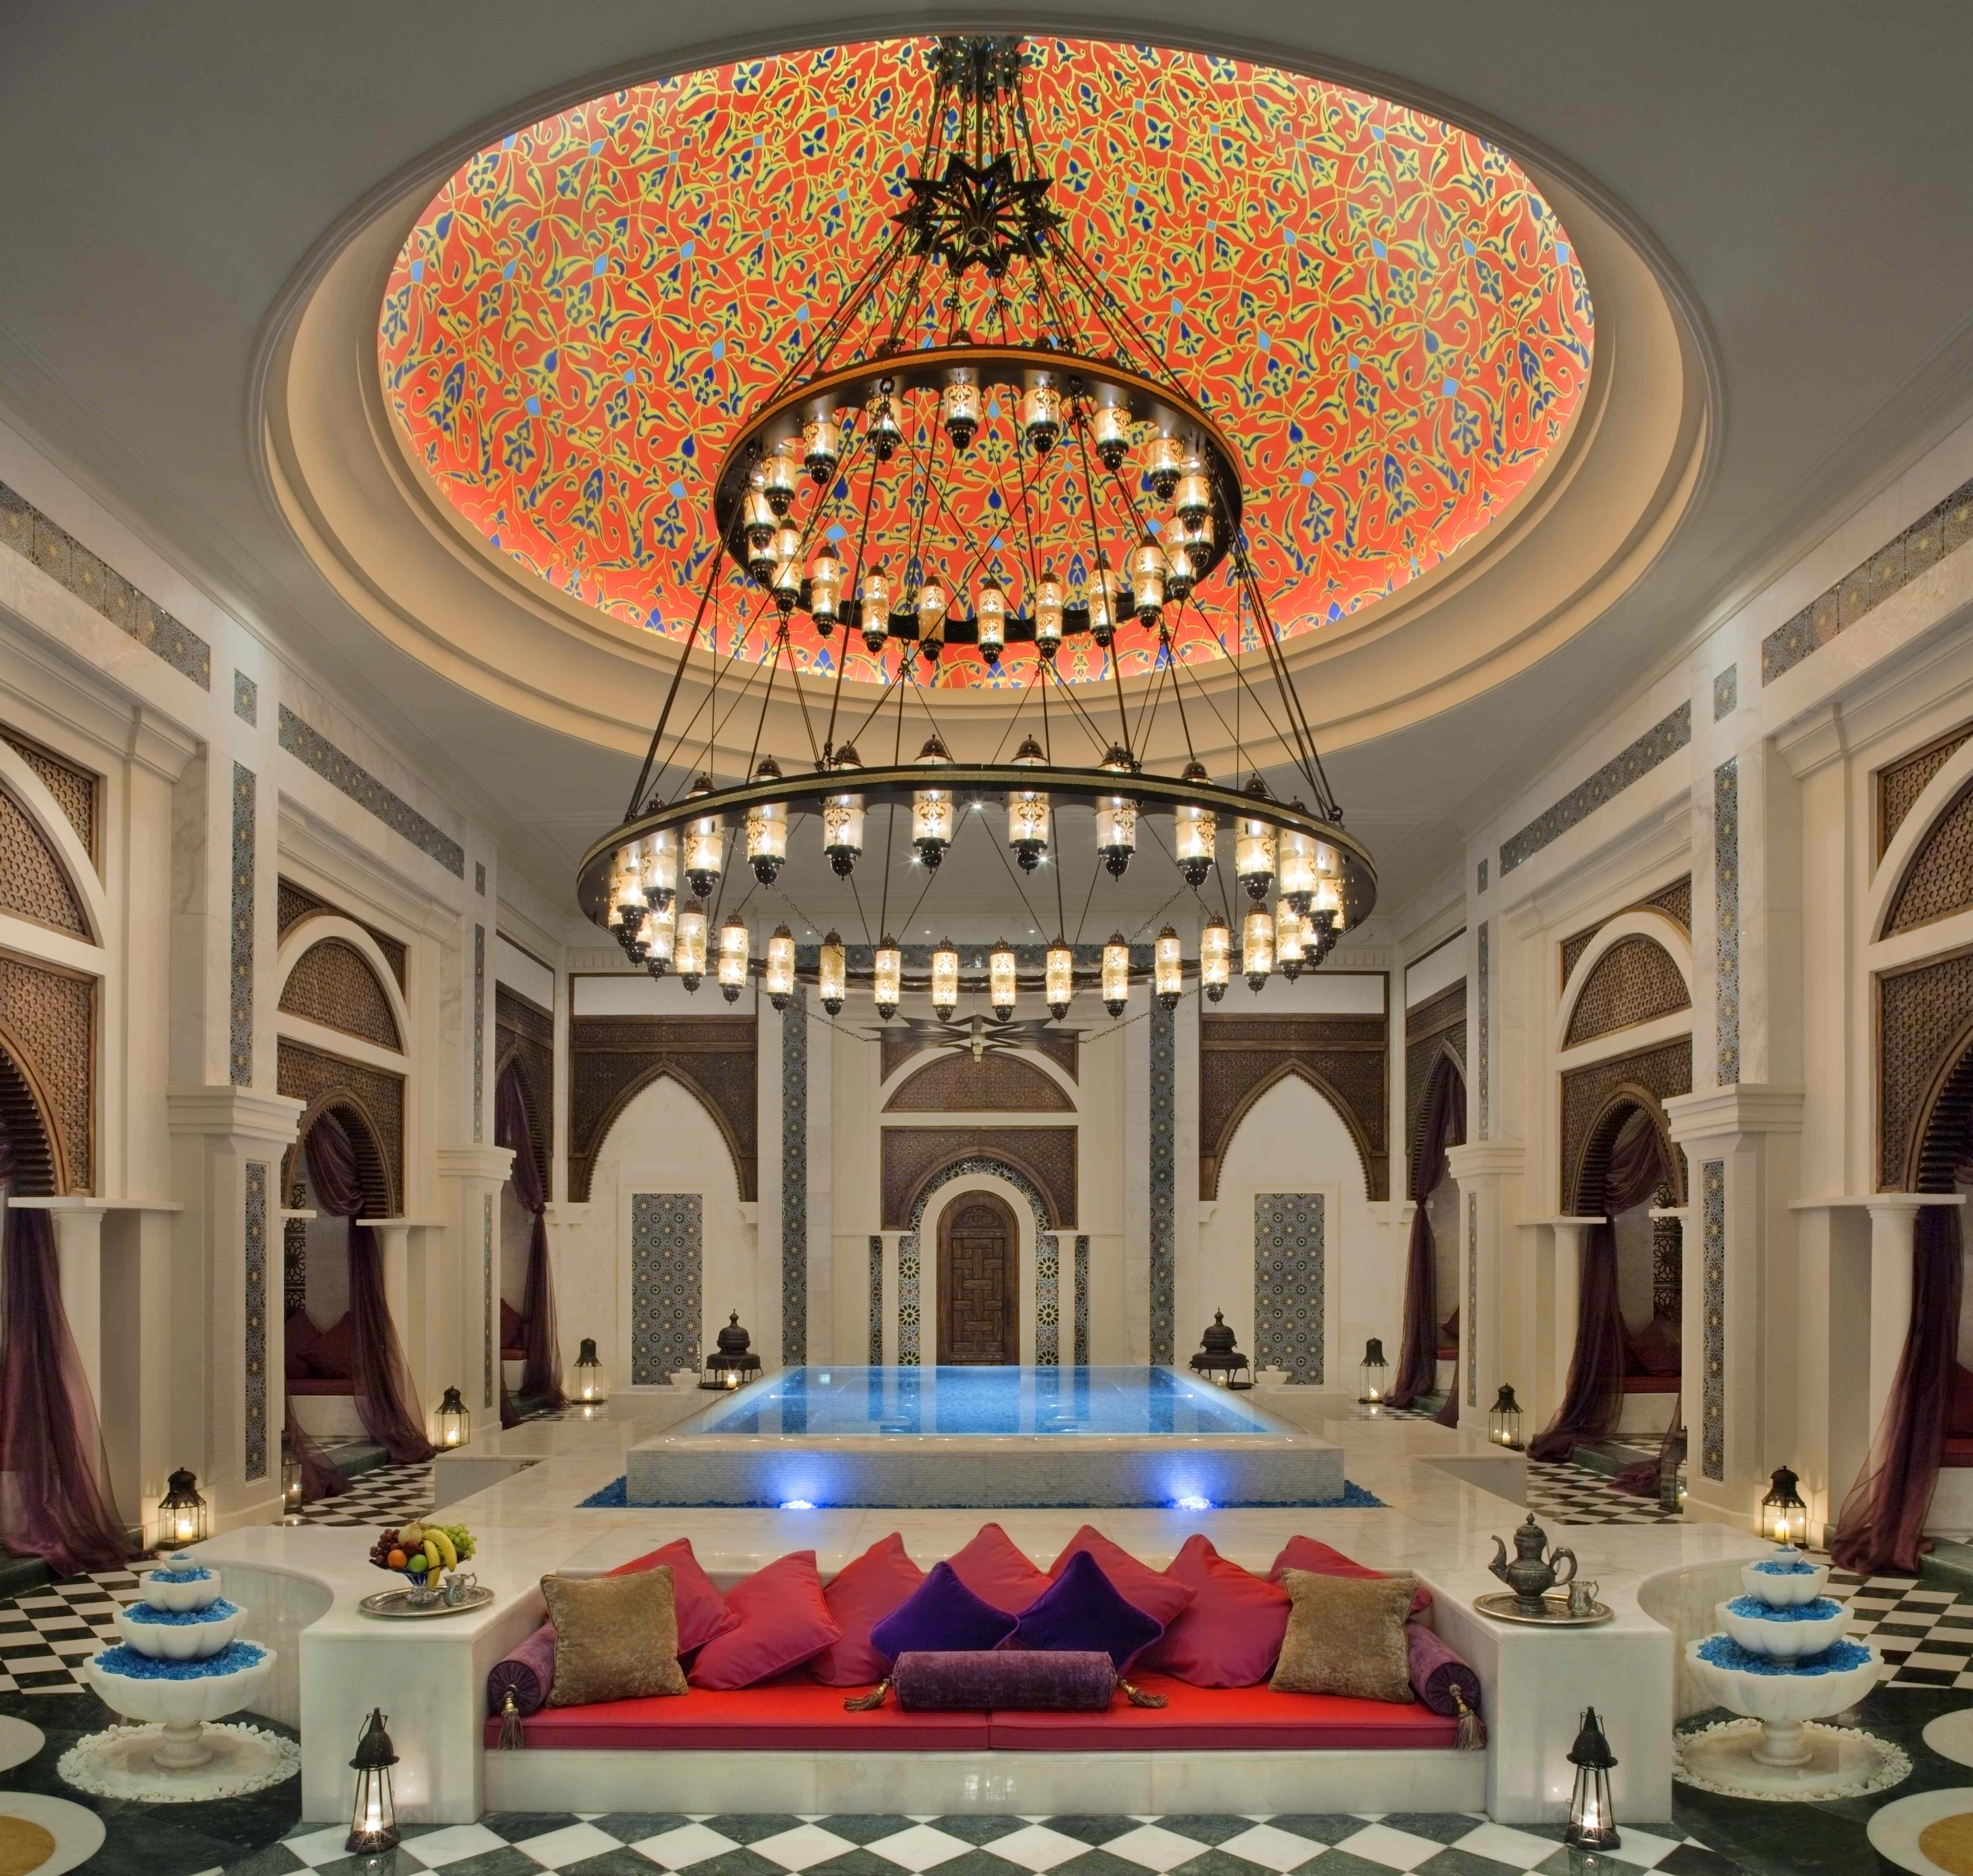 Turkish luxuries talise ottoman spa haute living for Spa design hotel